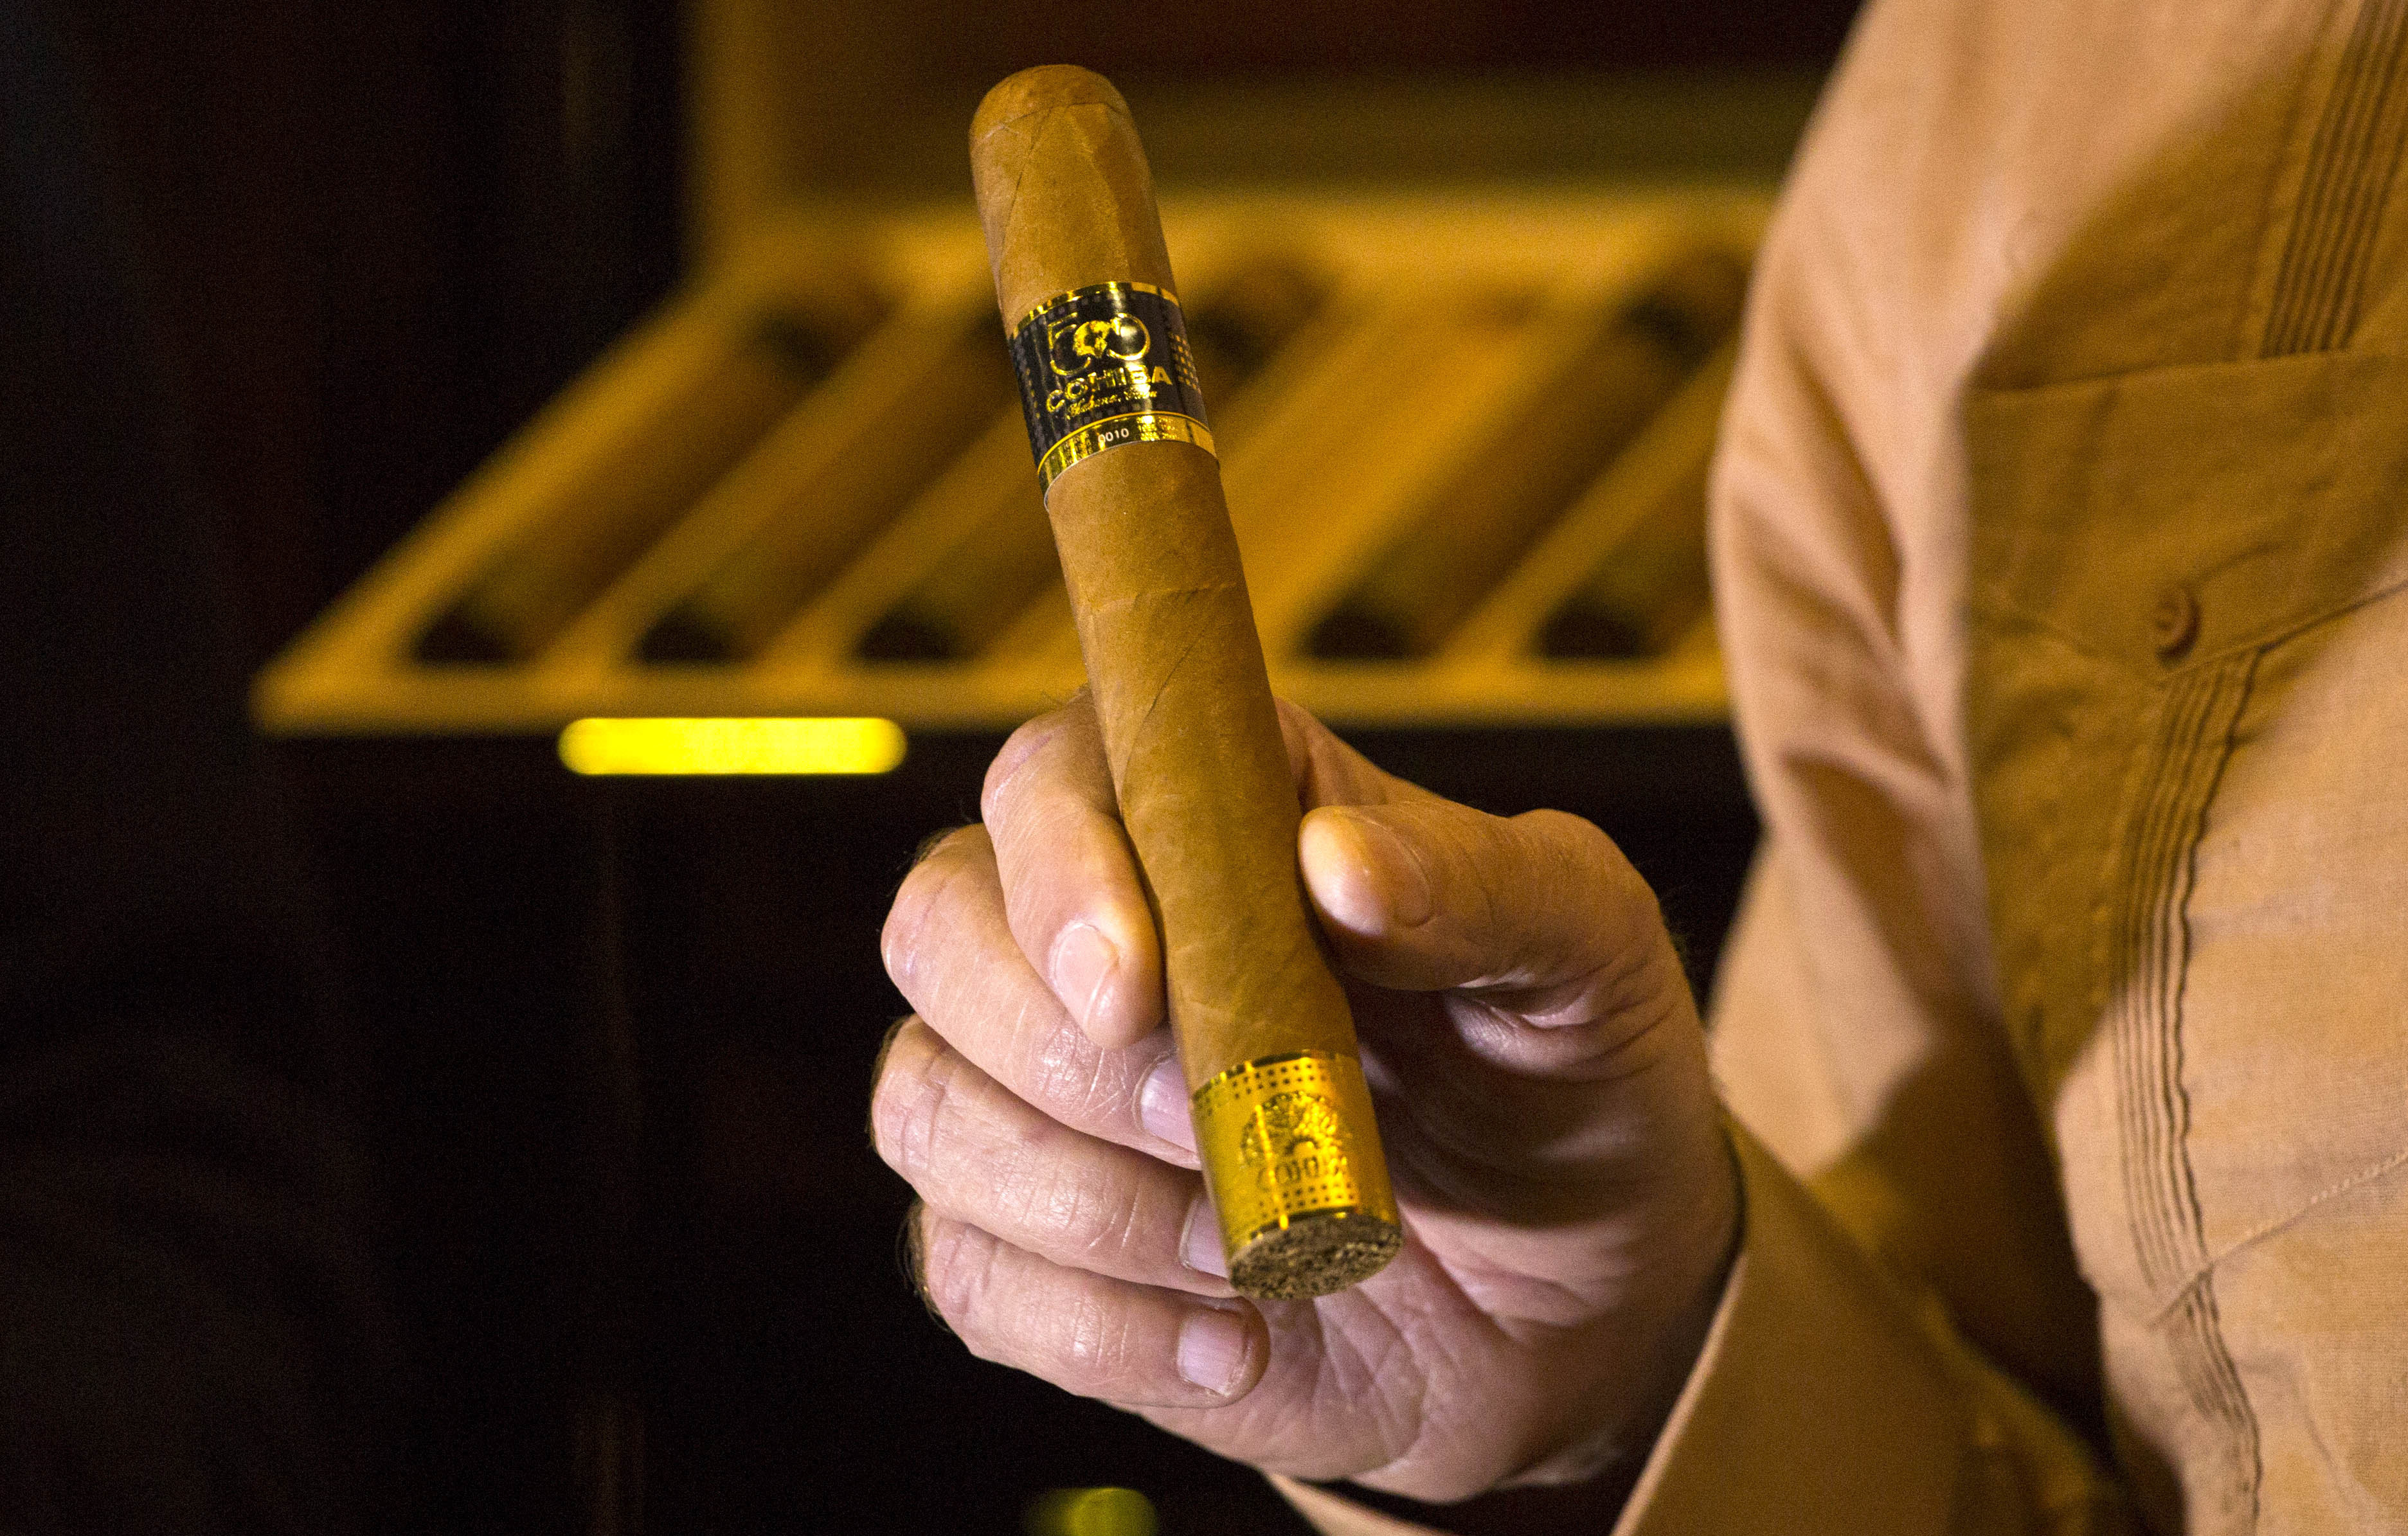 An official displays a limited edition Cohiba 50 cigar, one of 2,000 made for the 50th anniversary of the Cuban brand, on the opening day of the annual Havana Cigar Festival in Havana, Cuba, in February.